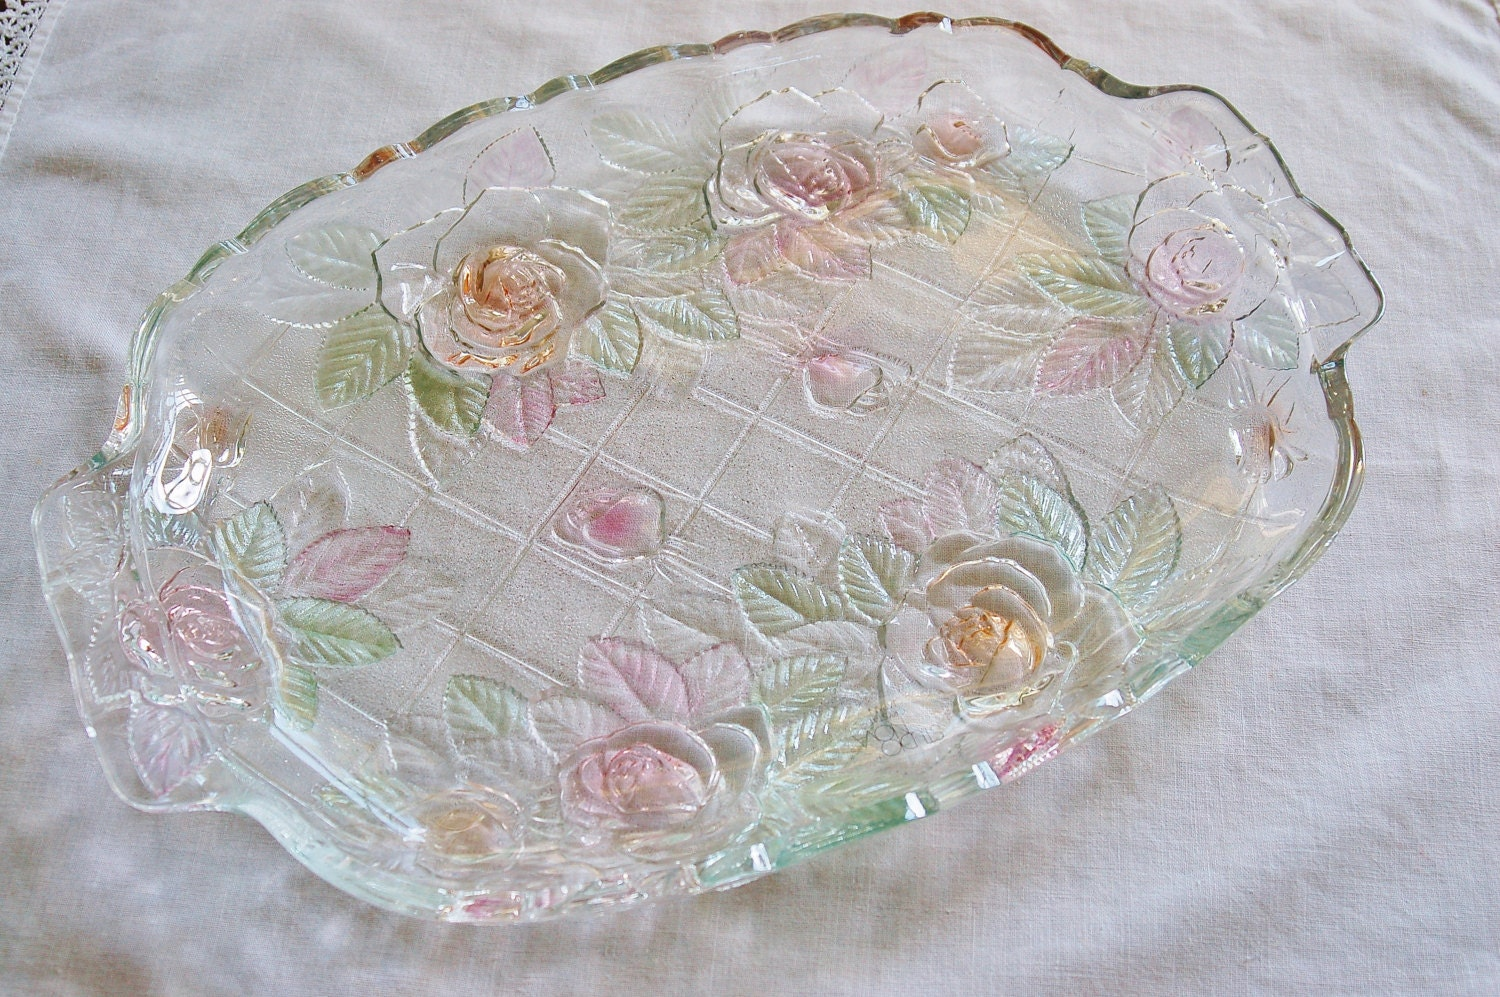 mikasa studio nova beauty rose glass platter wedding cottage